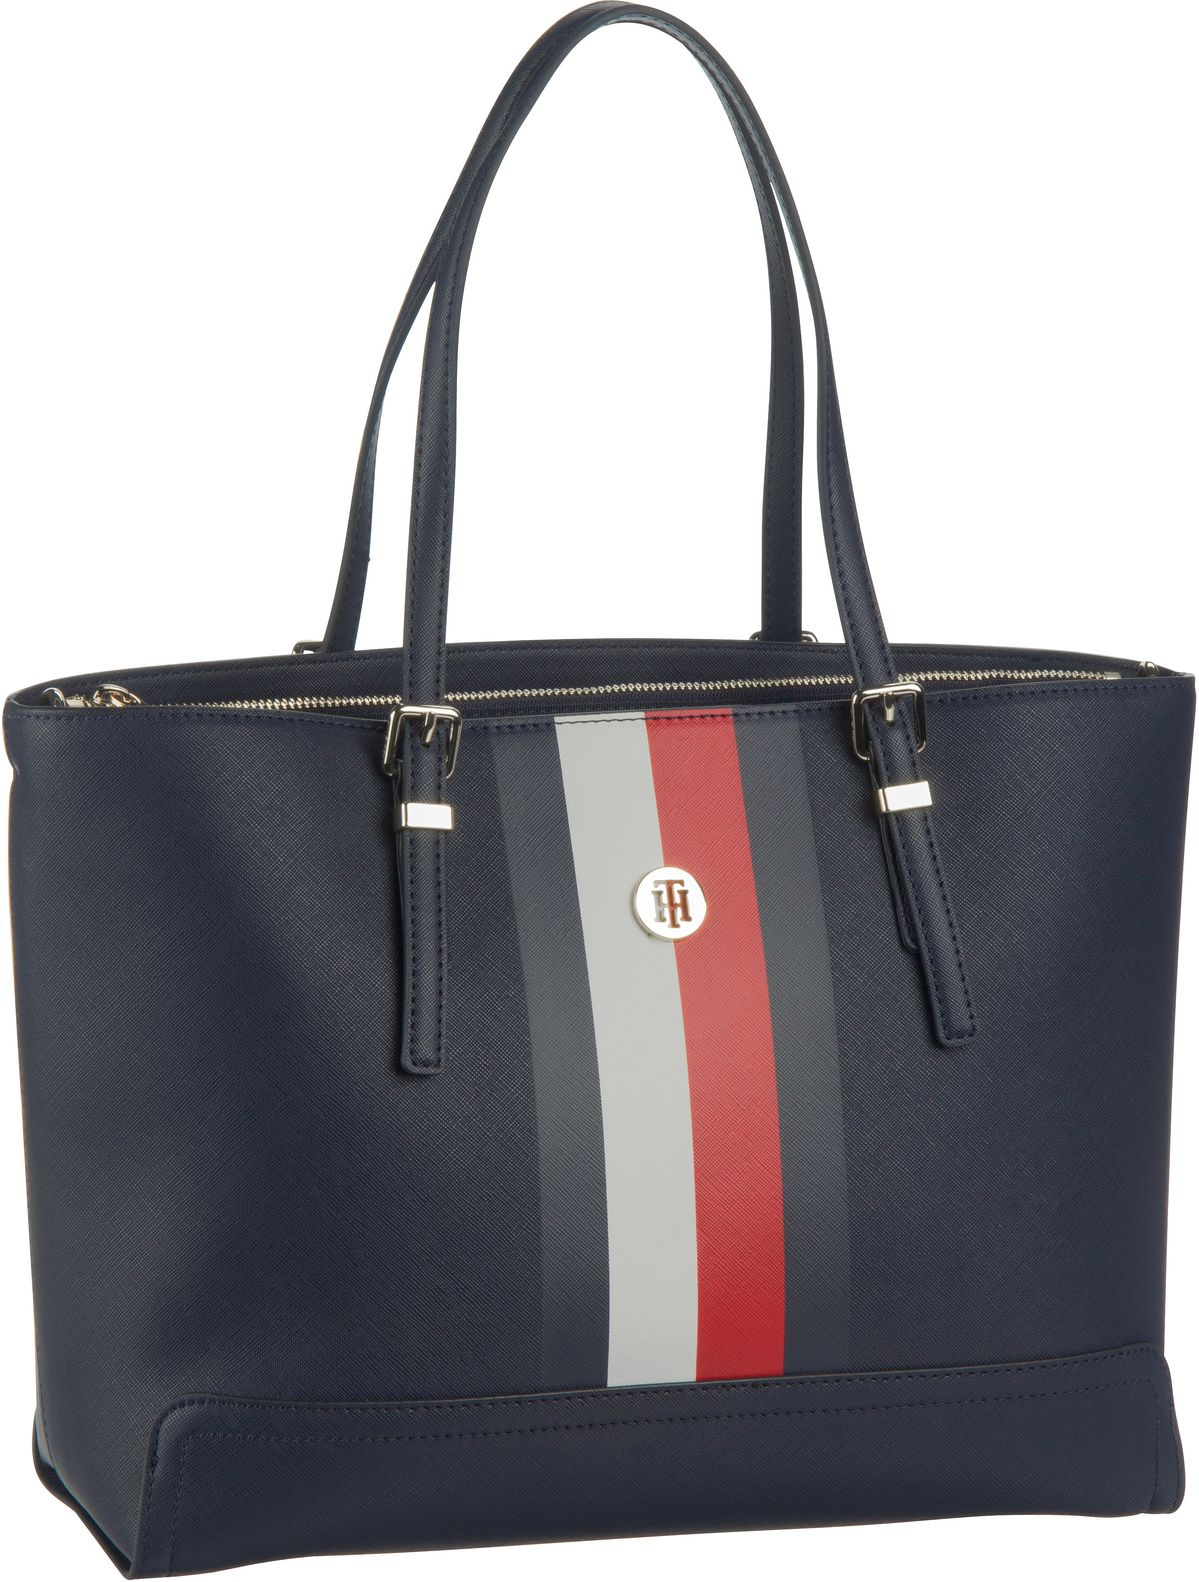 Shopper Honey Med Tote Corp 7398 Corporate